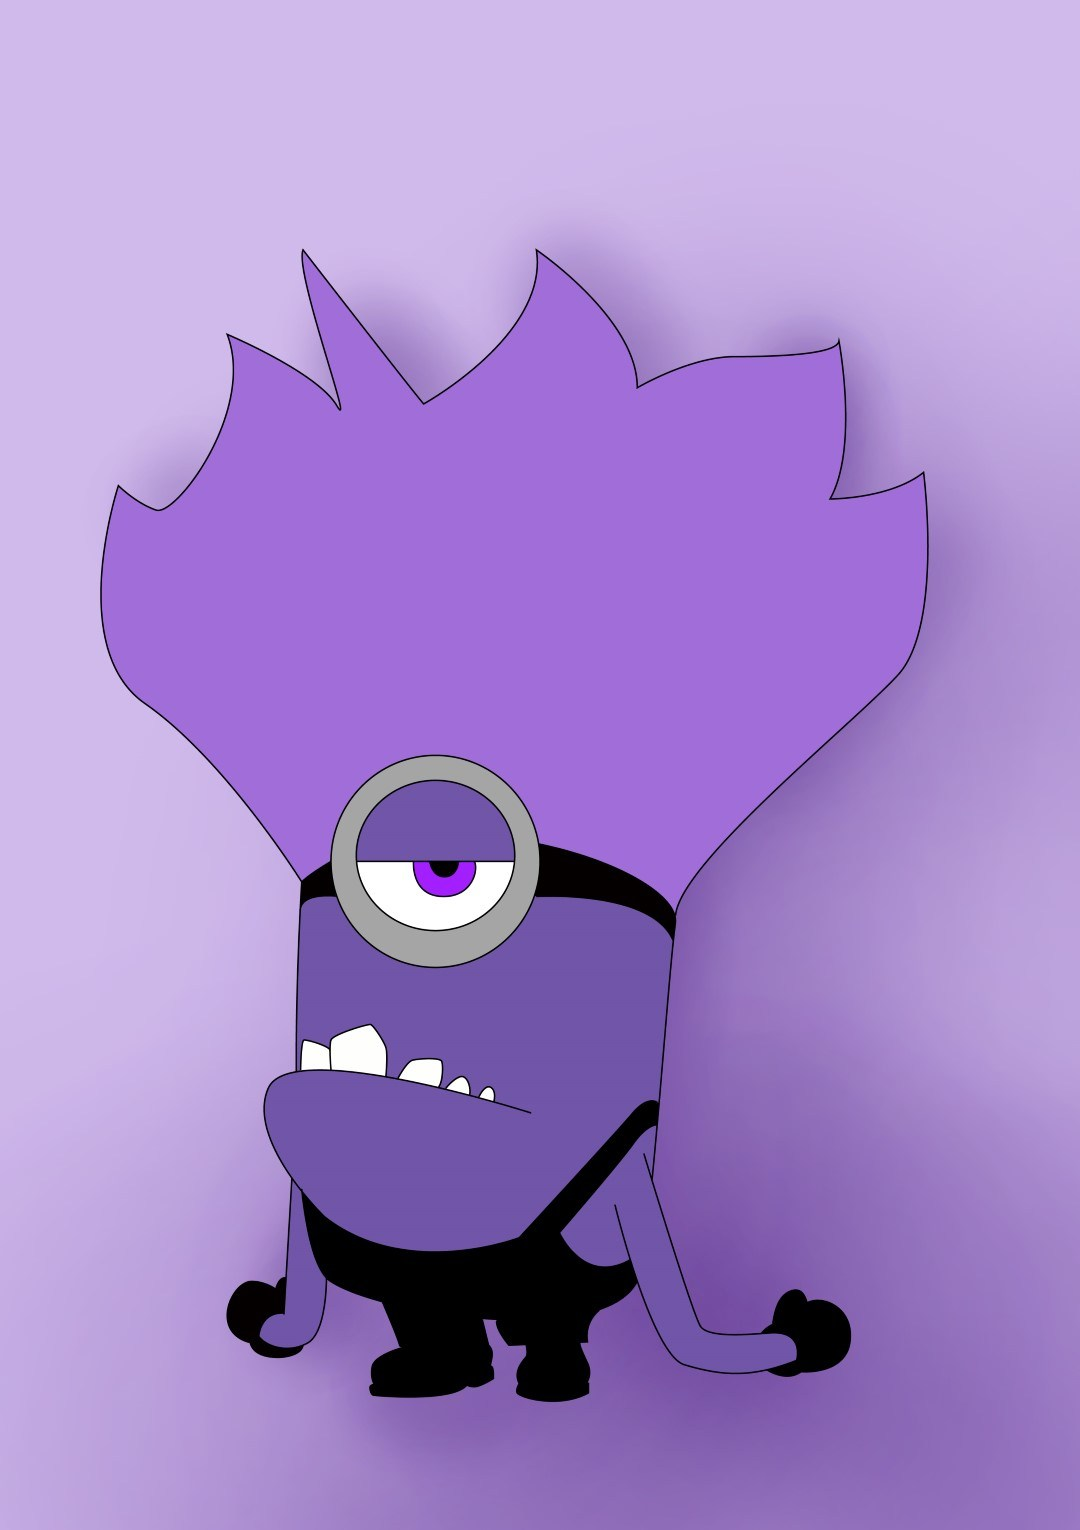 1080x1530 How To Draw Purple Minion From Despicable Me